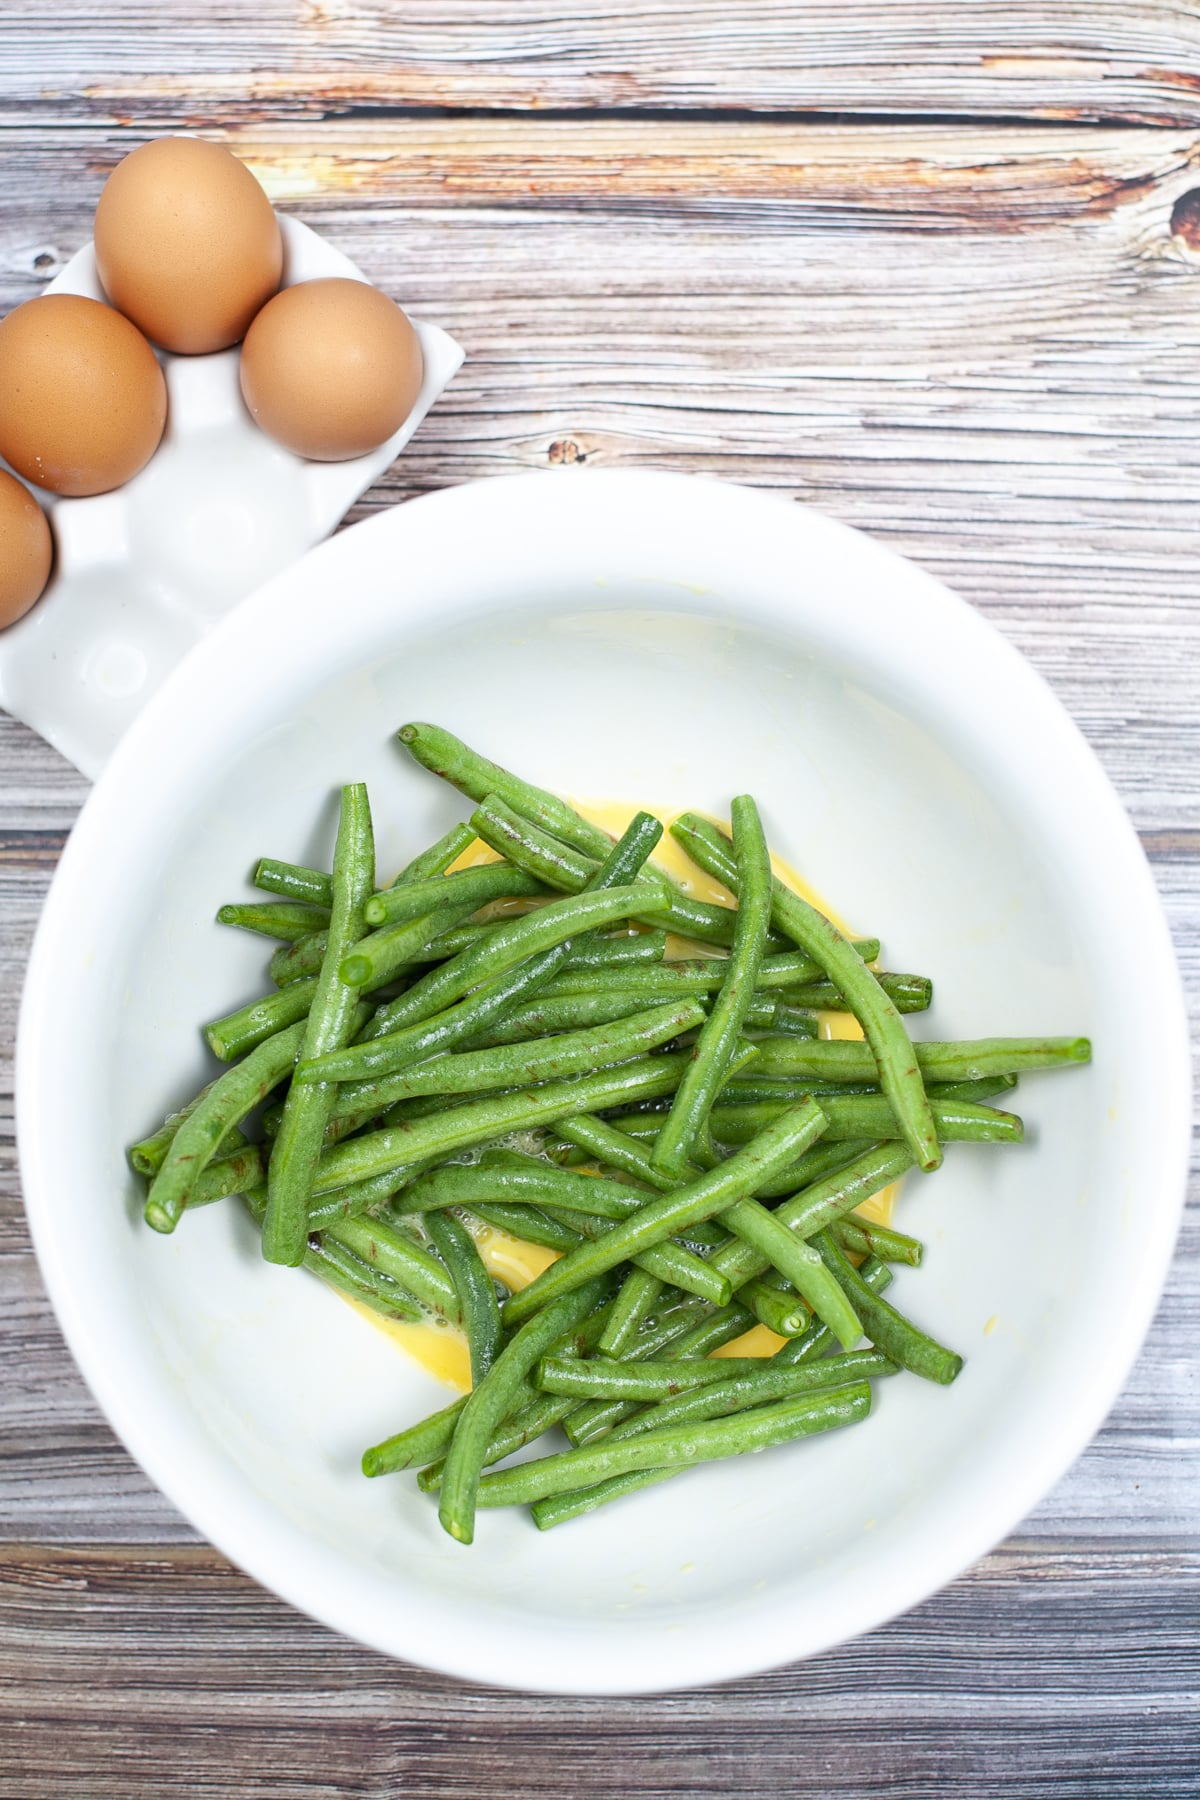 green beans getting dipped in an egg and garlic wash